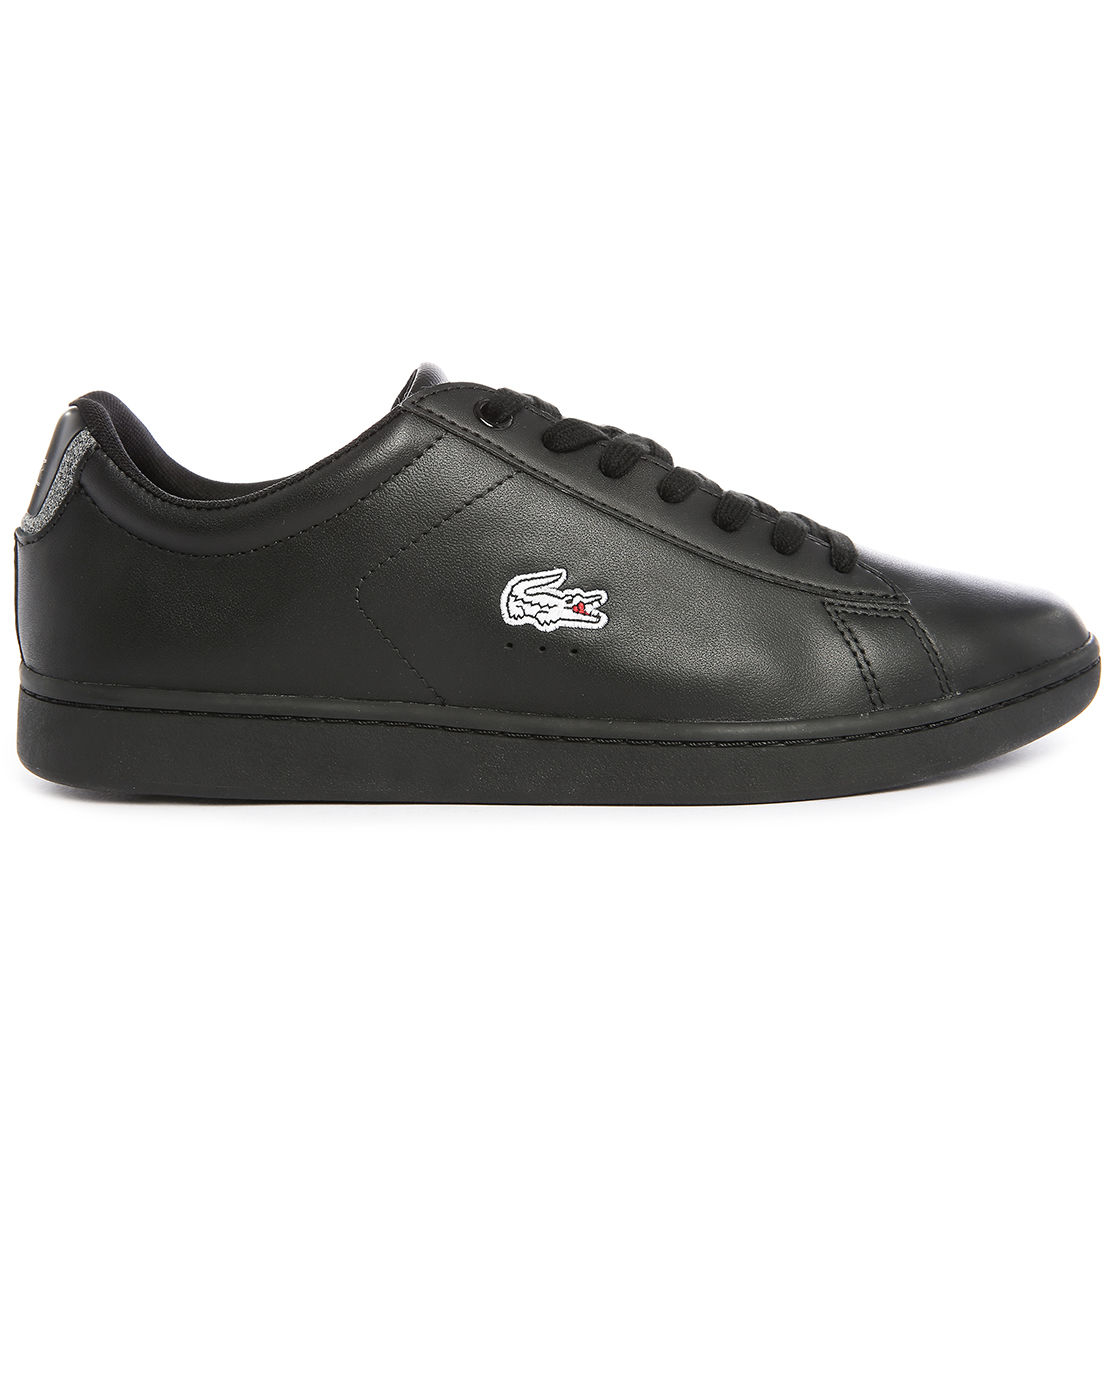 Black Low Top Polo Shoes